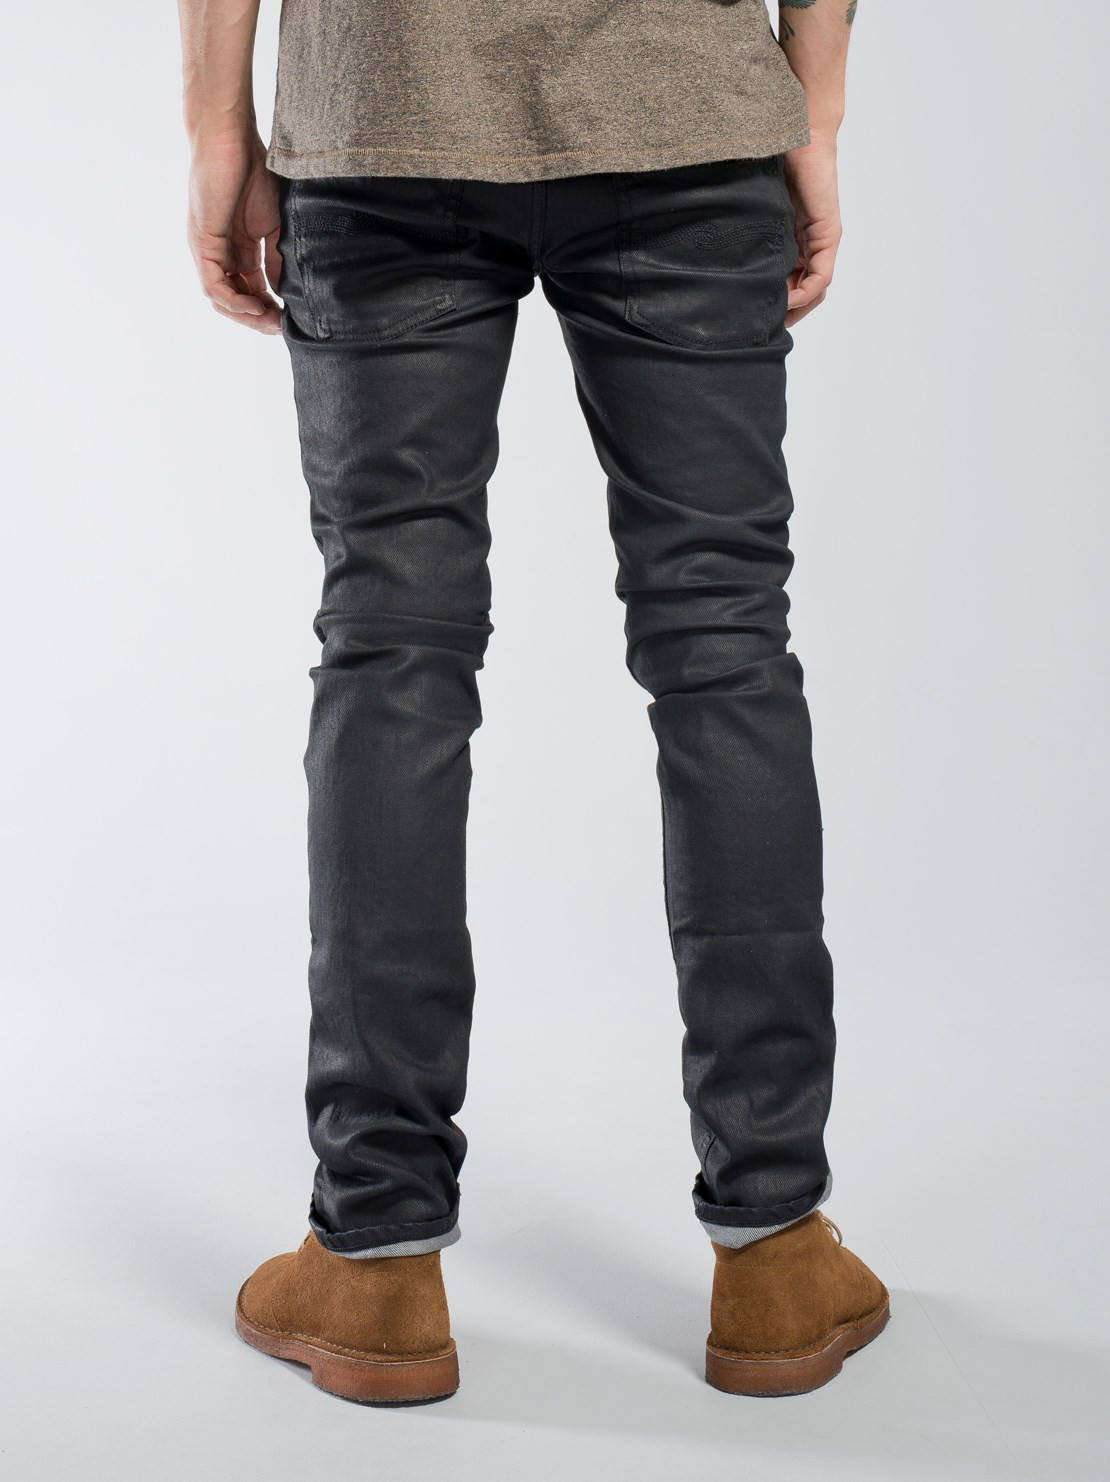 Nudie Jeans Thin Finn: Back 2 Black Jeans